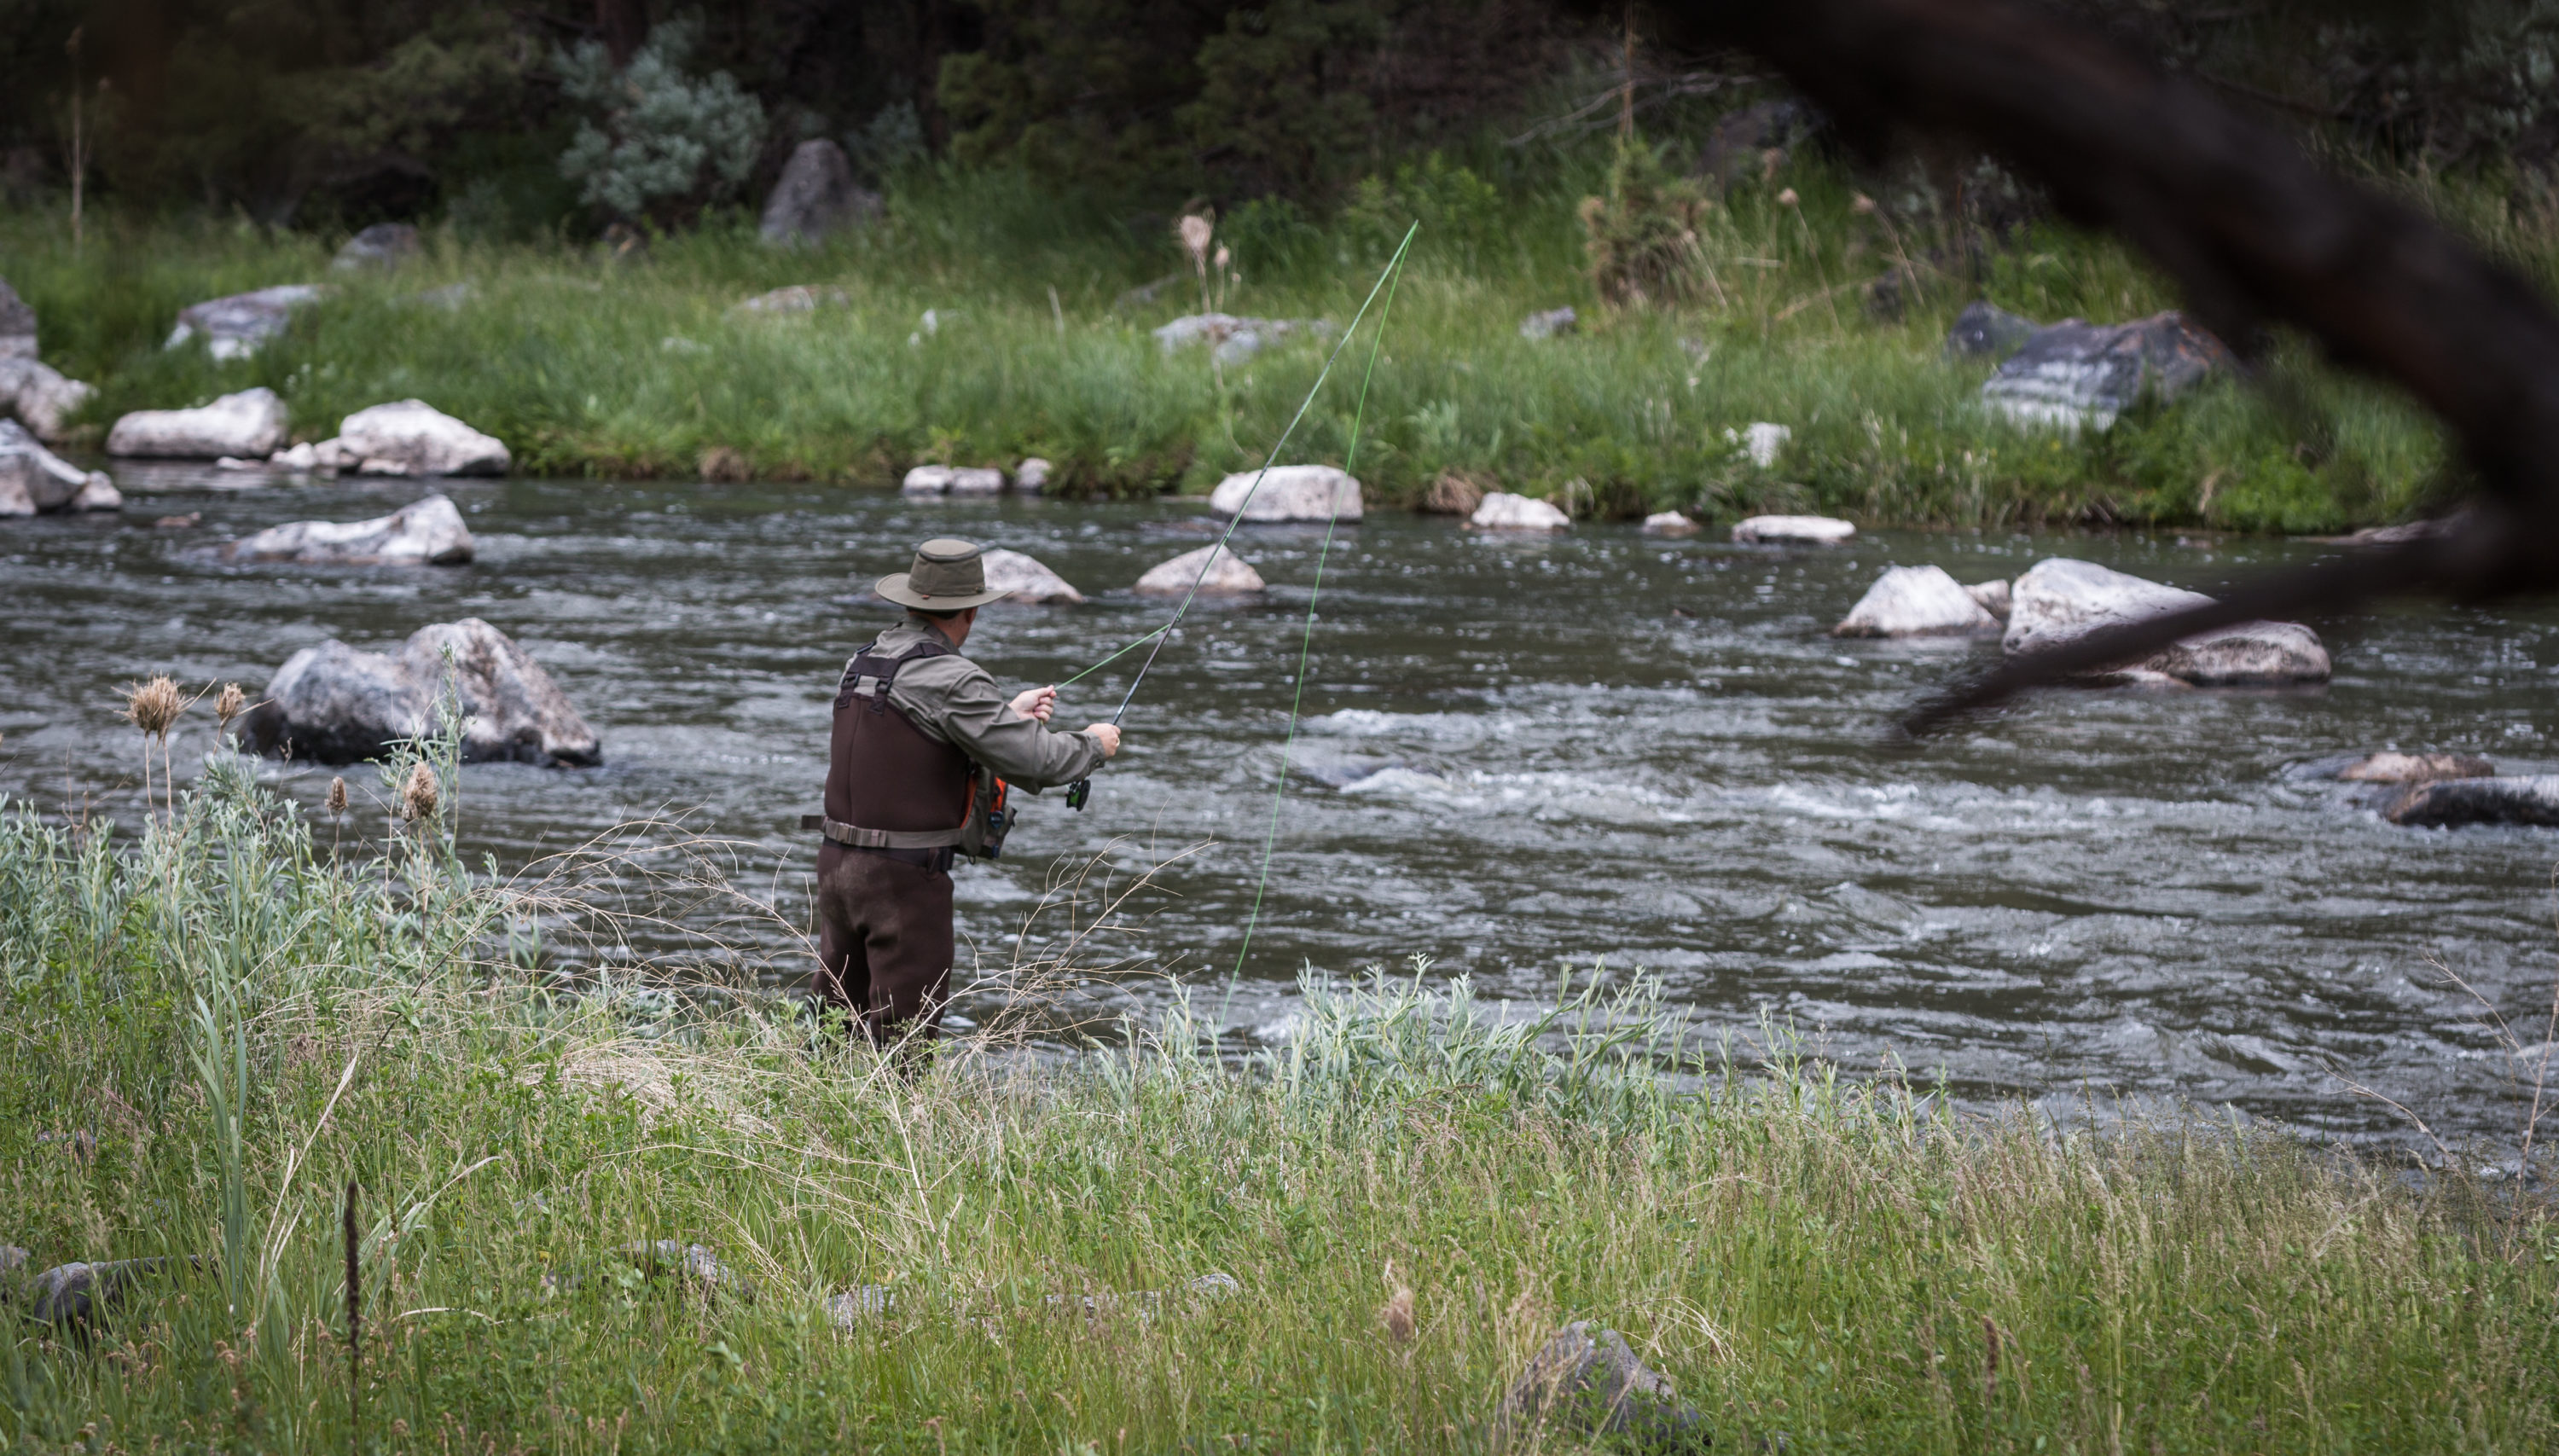 https://commons.wikimedia.org/wiki/File:Fly_fishing_on_the_Crooked_Wild_and_Scenic_River_(35617171264).jpg